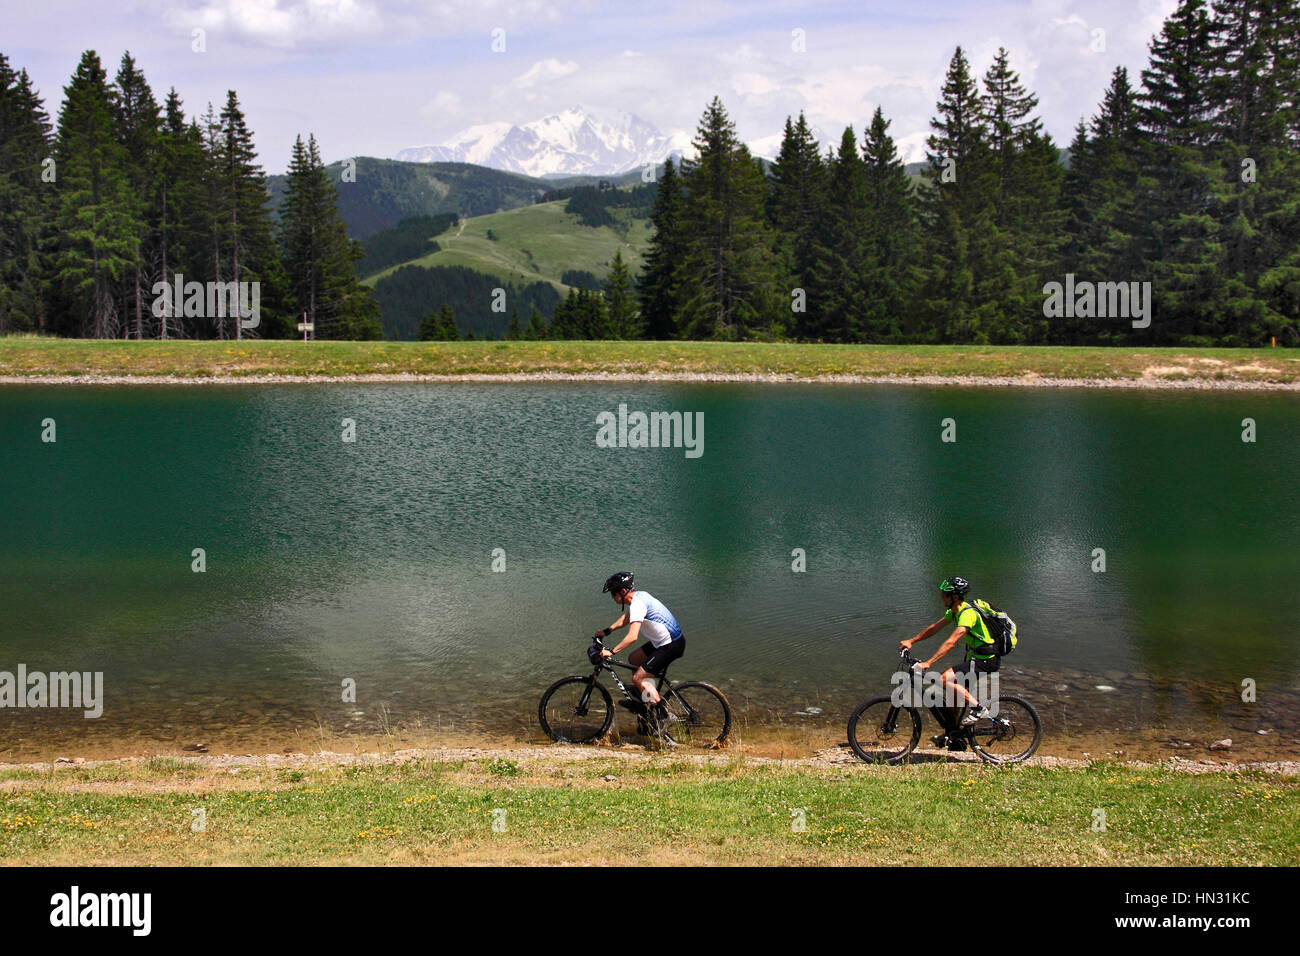 Two mountain bikers riding along lake with the mountain Mont Blanc in the background, French Alps, France - Stock Image